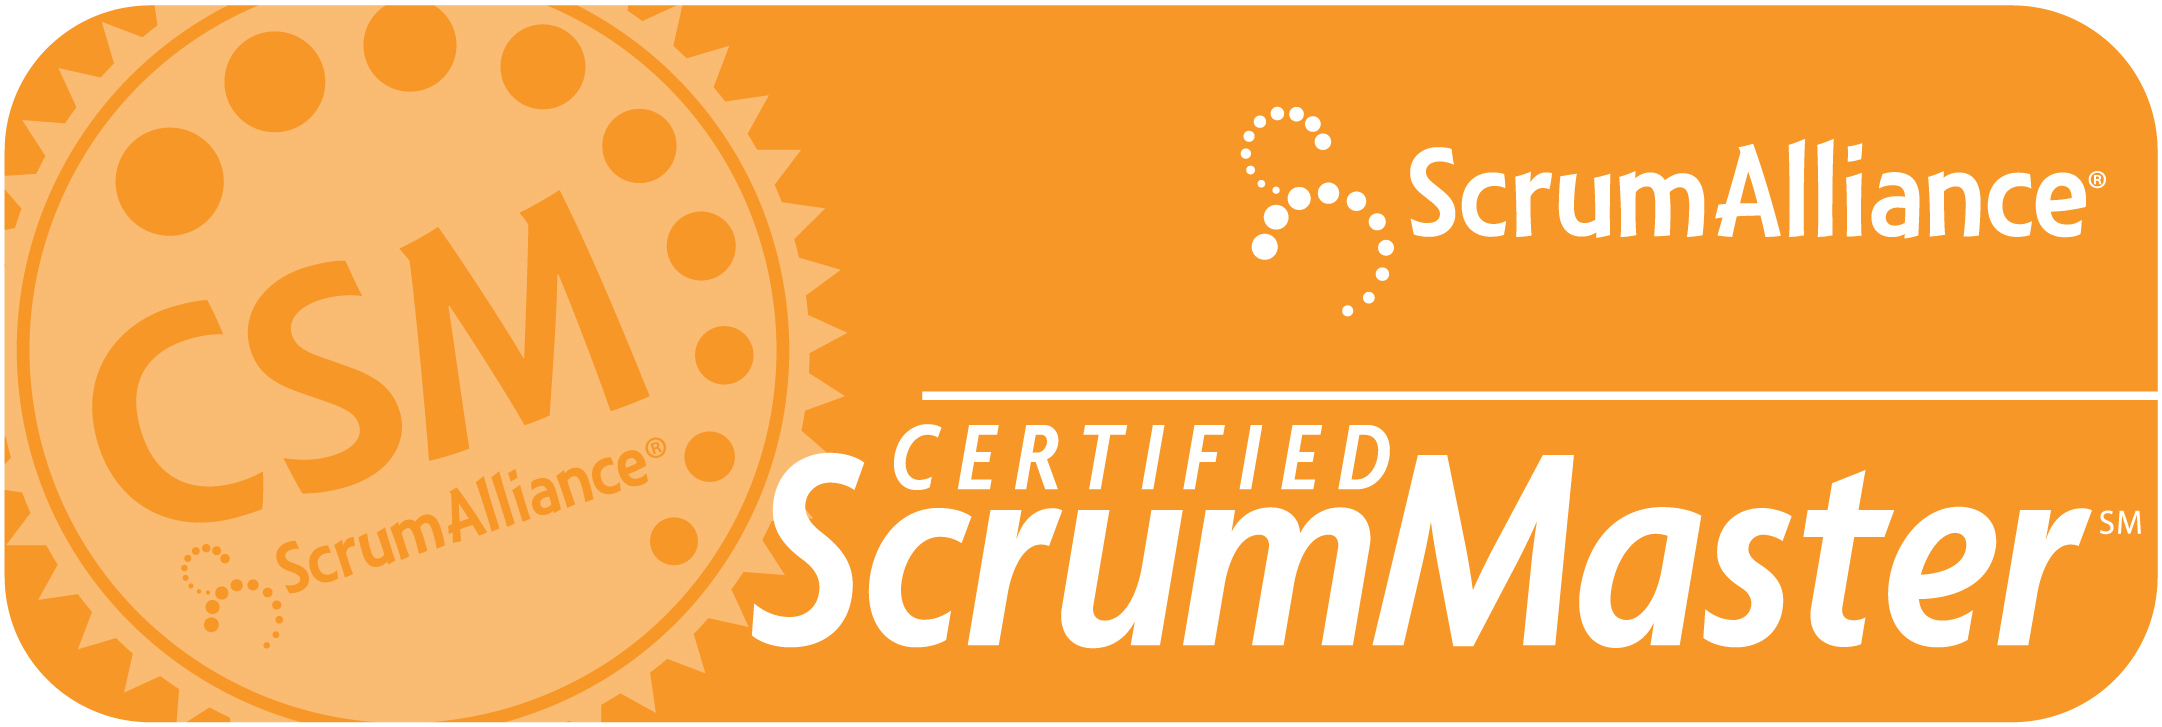 Certified Scrum Master Project Management e-learning course